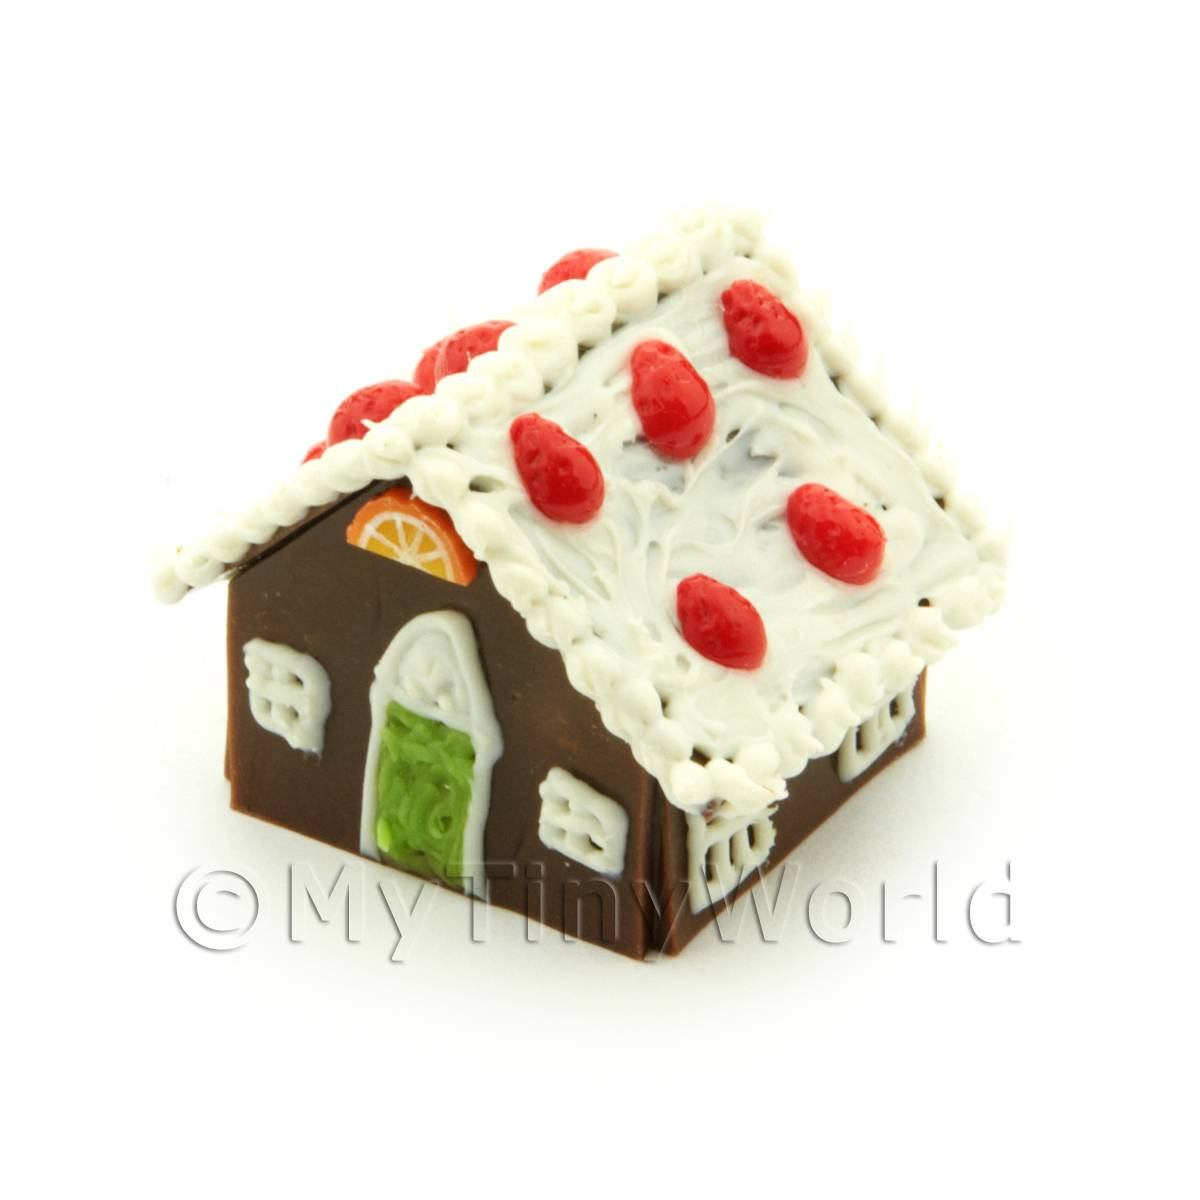 Dolls House Miniature Strawberry Gingerbread House